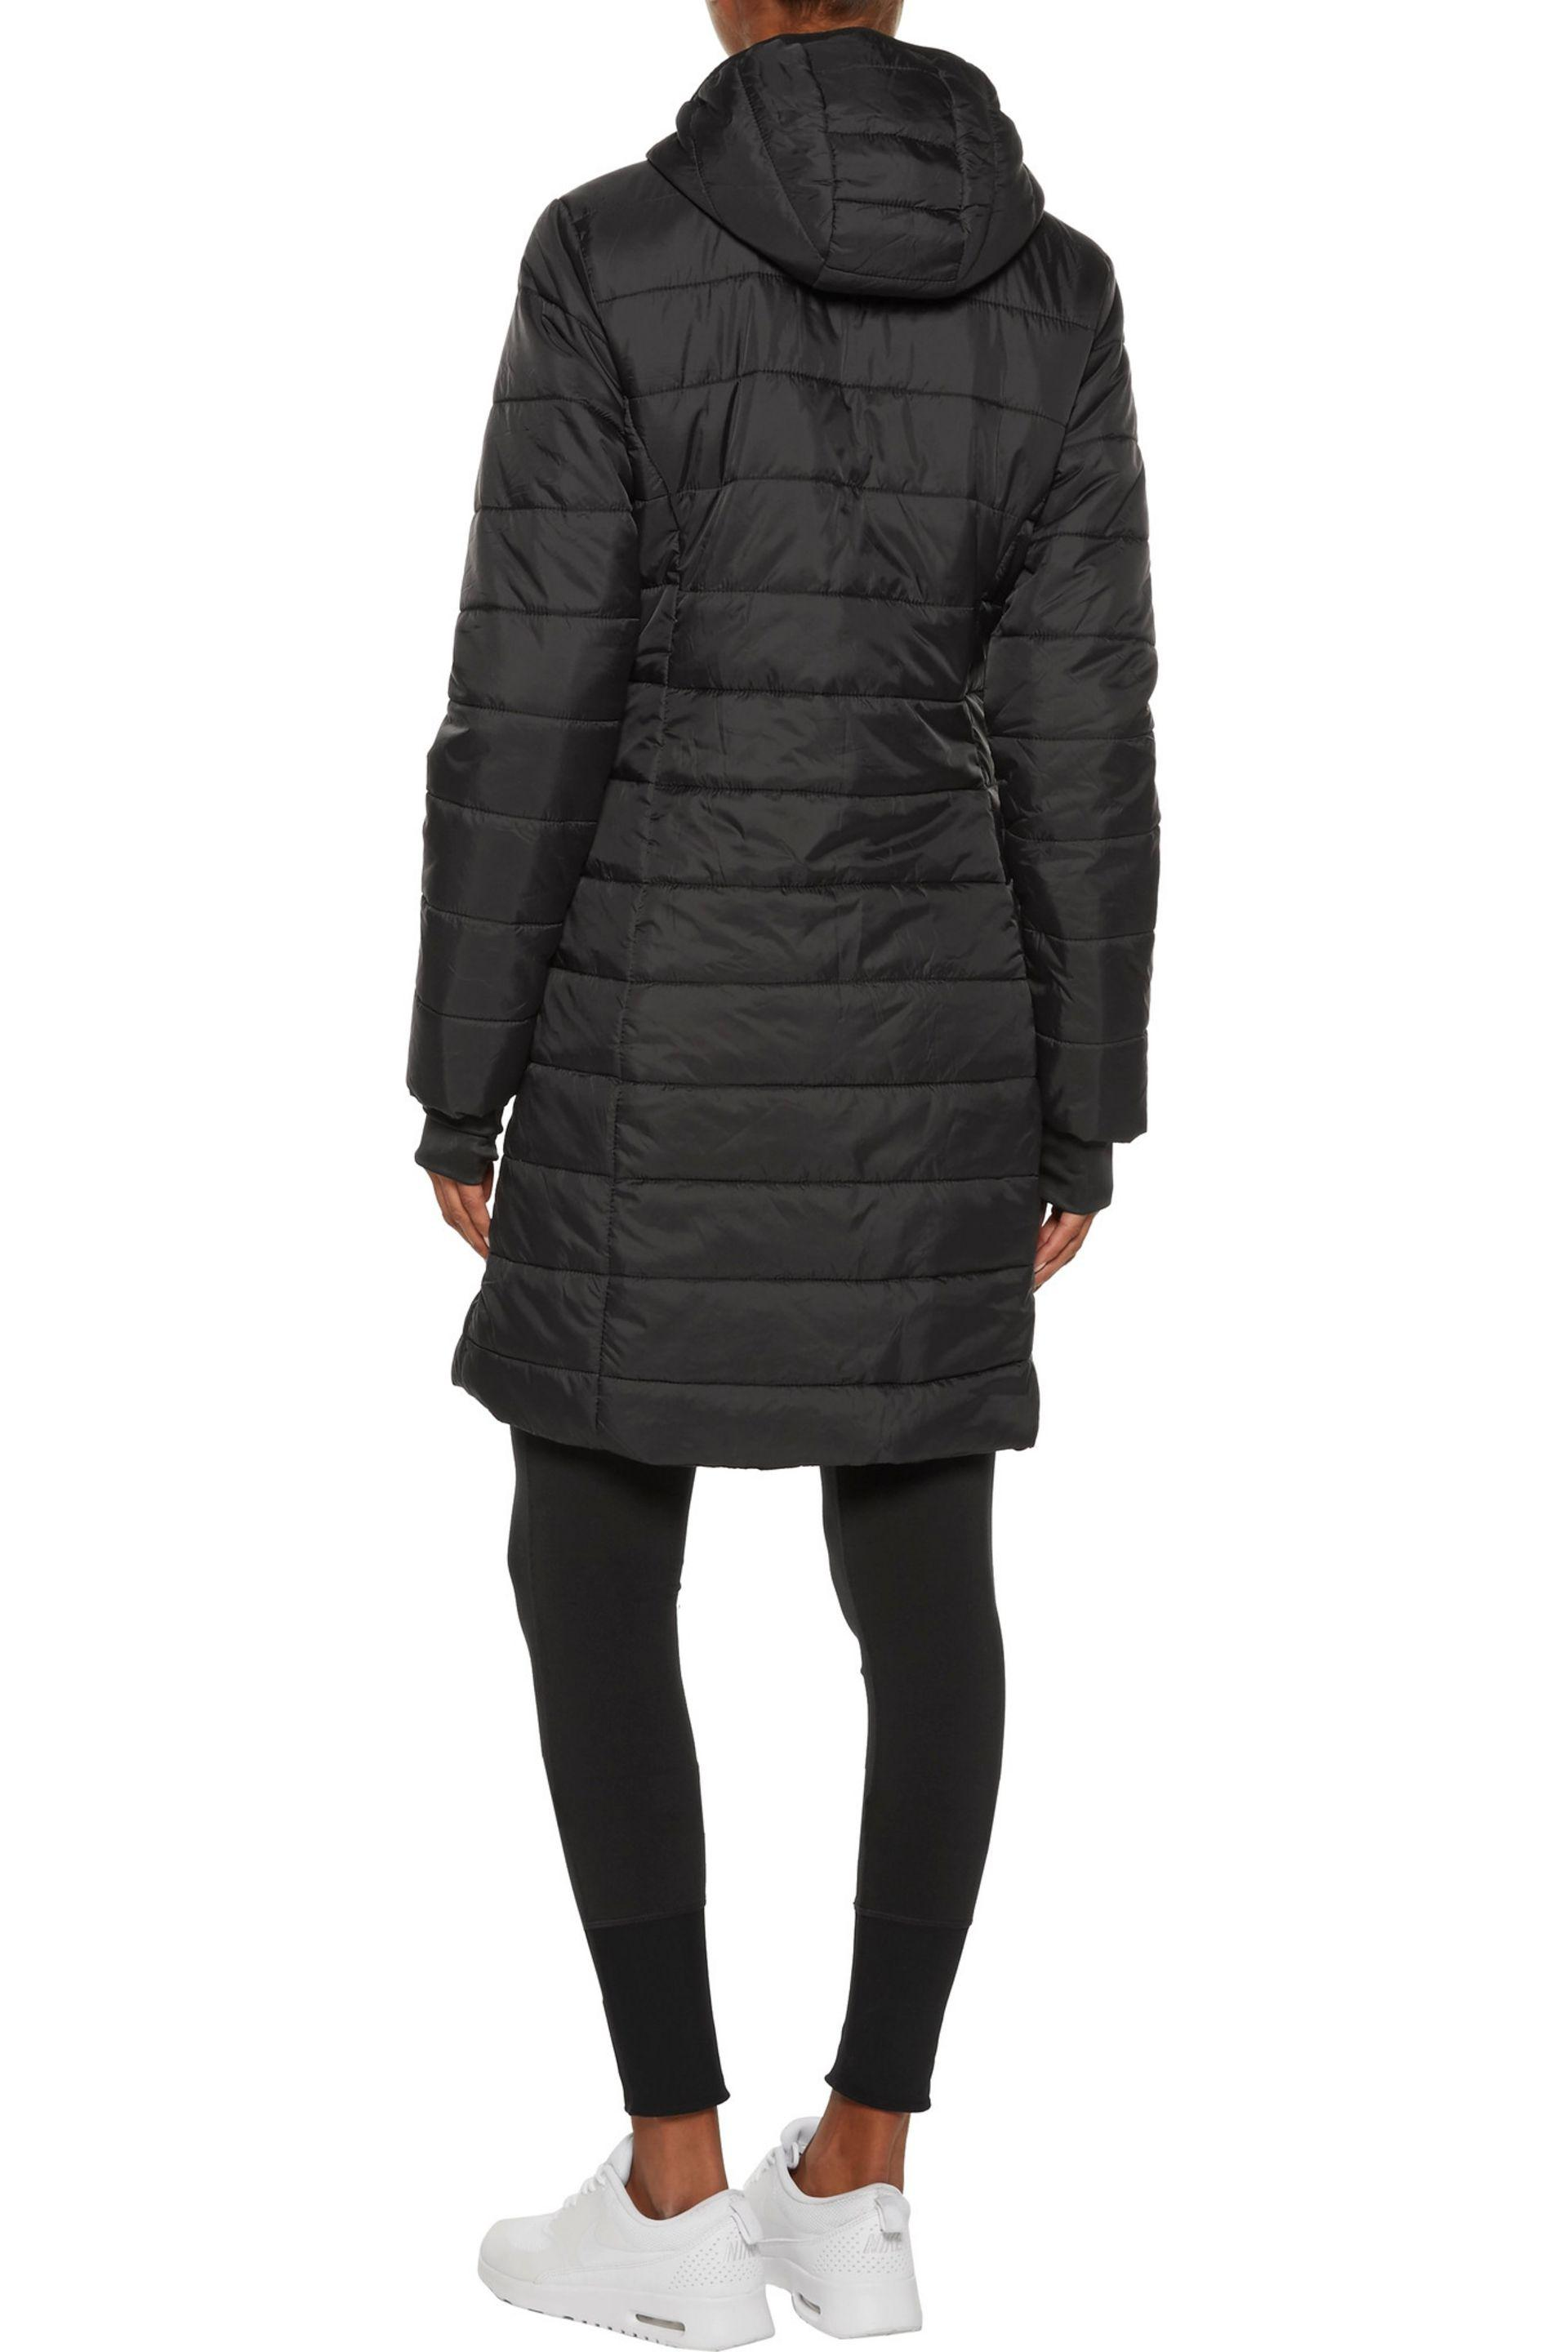 Purity Active - Black Quilted Shell Hooded Coat - Lyst. View fullscreen